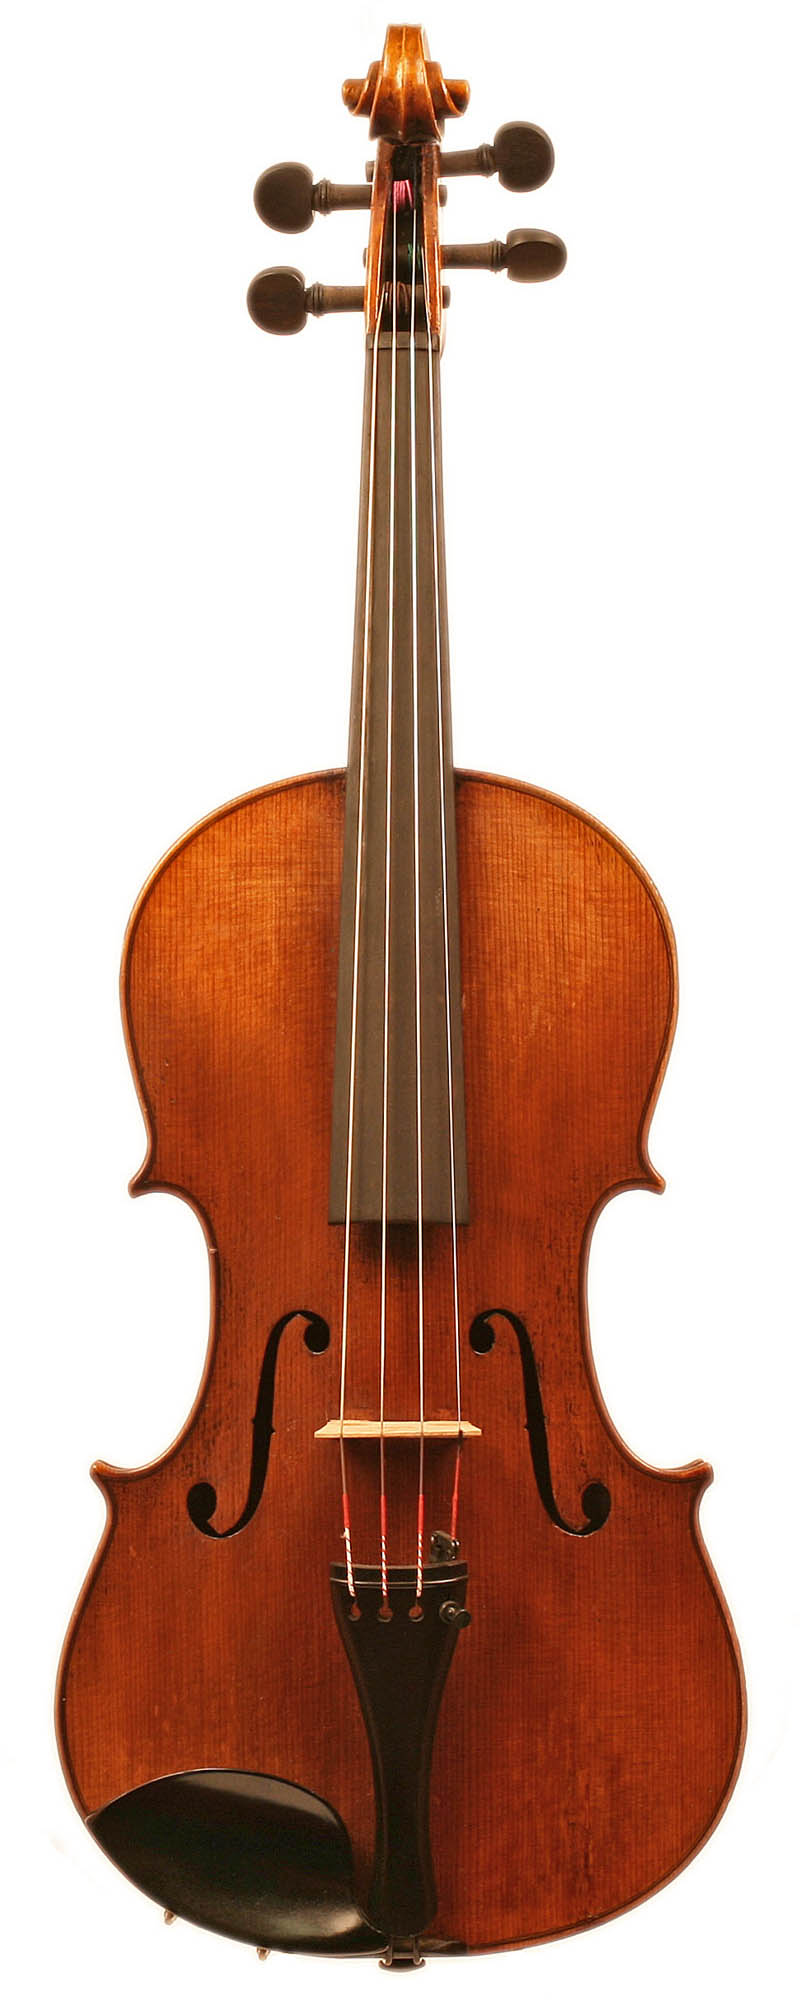 German violin, Mittenwald, Amati model c.1890